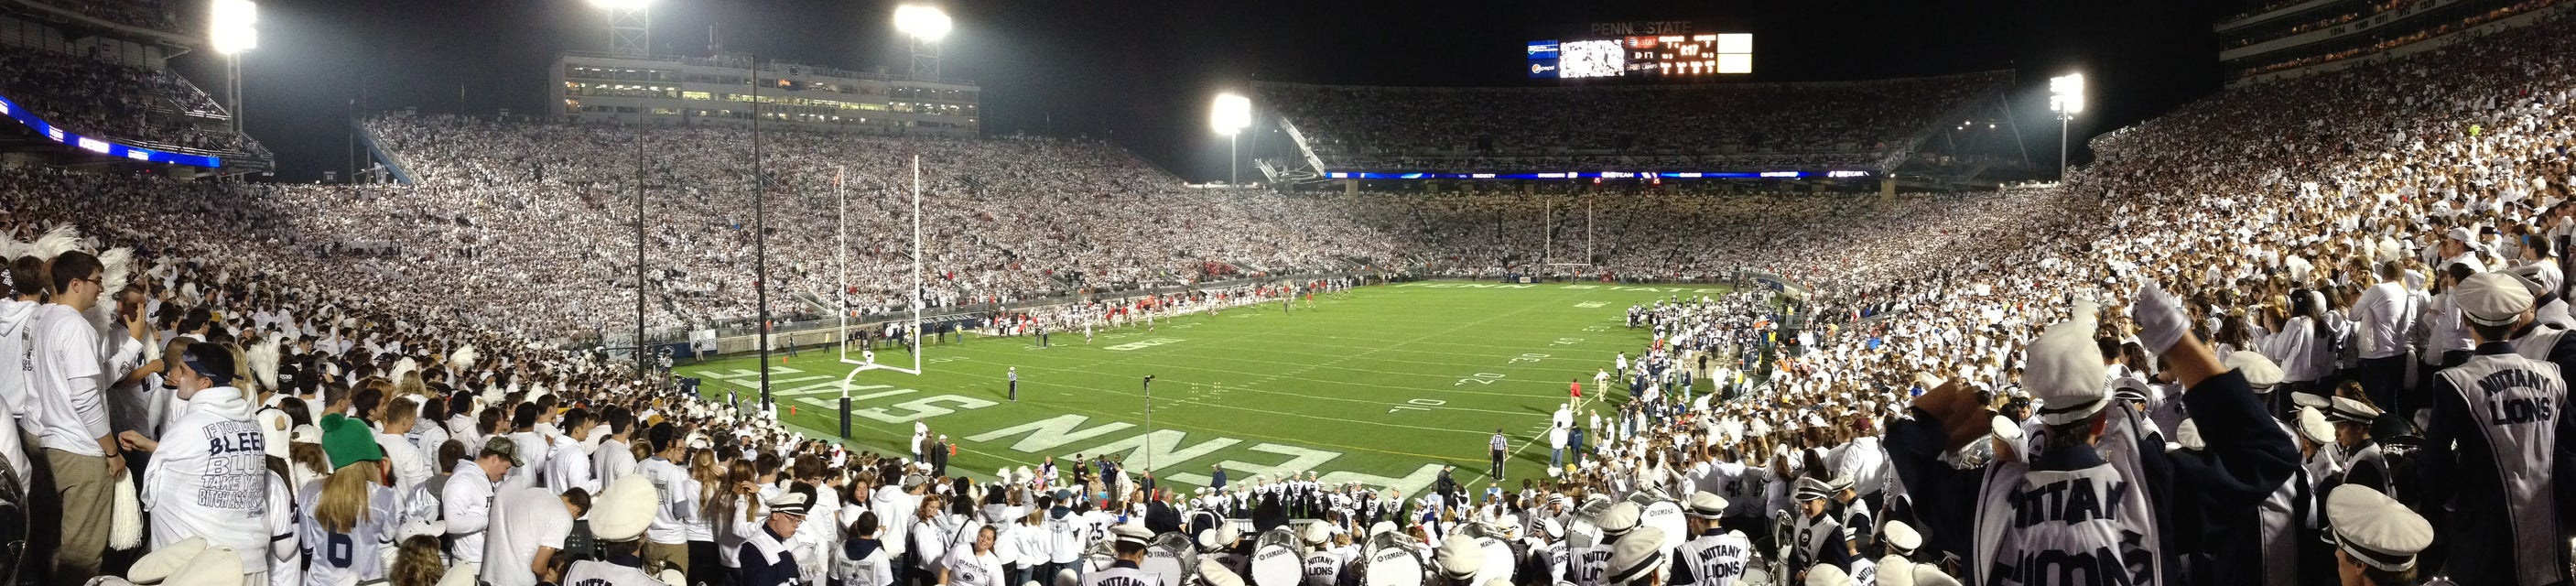 Penn State Football Tickets